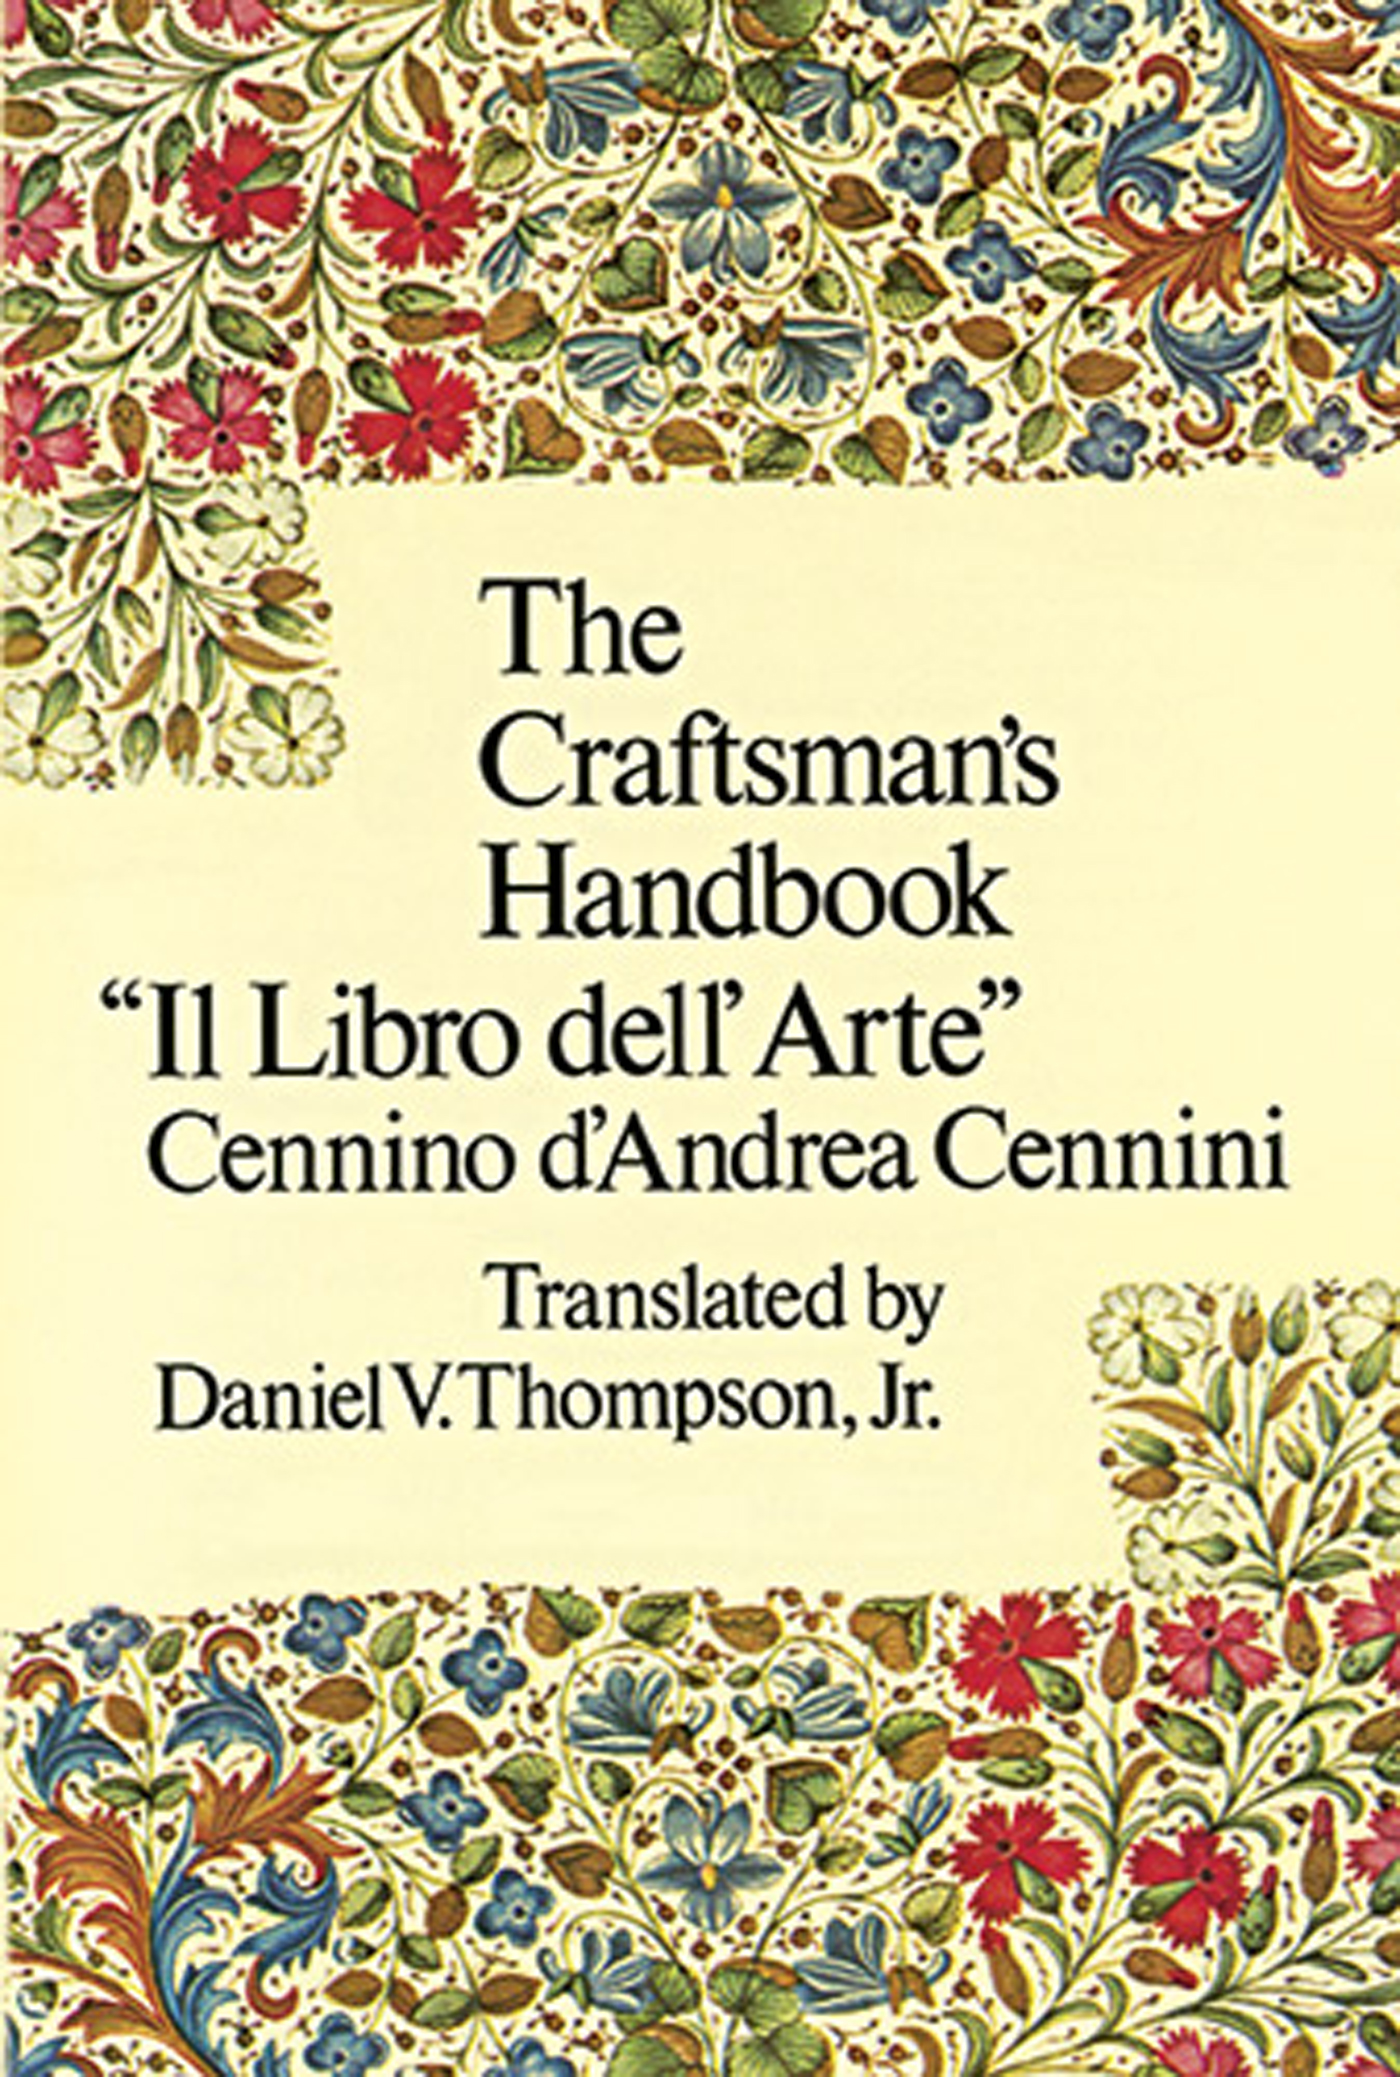 Arte Read Online The Craftsman S Handbook By Cennino Cennini Pdf Ebook Read Online